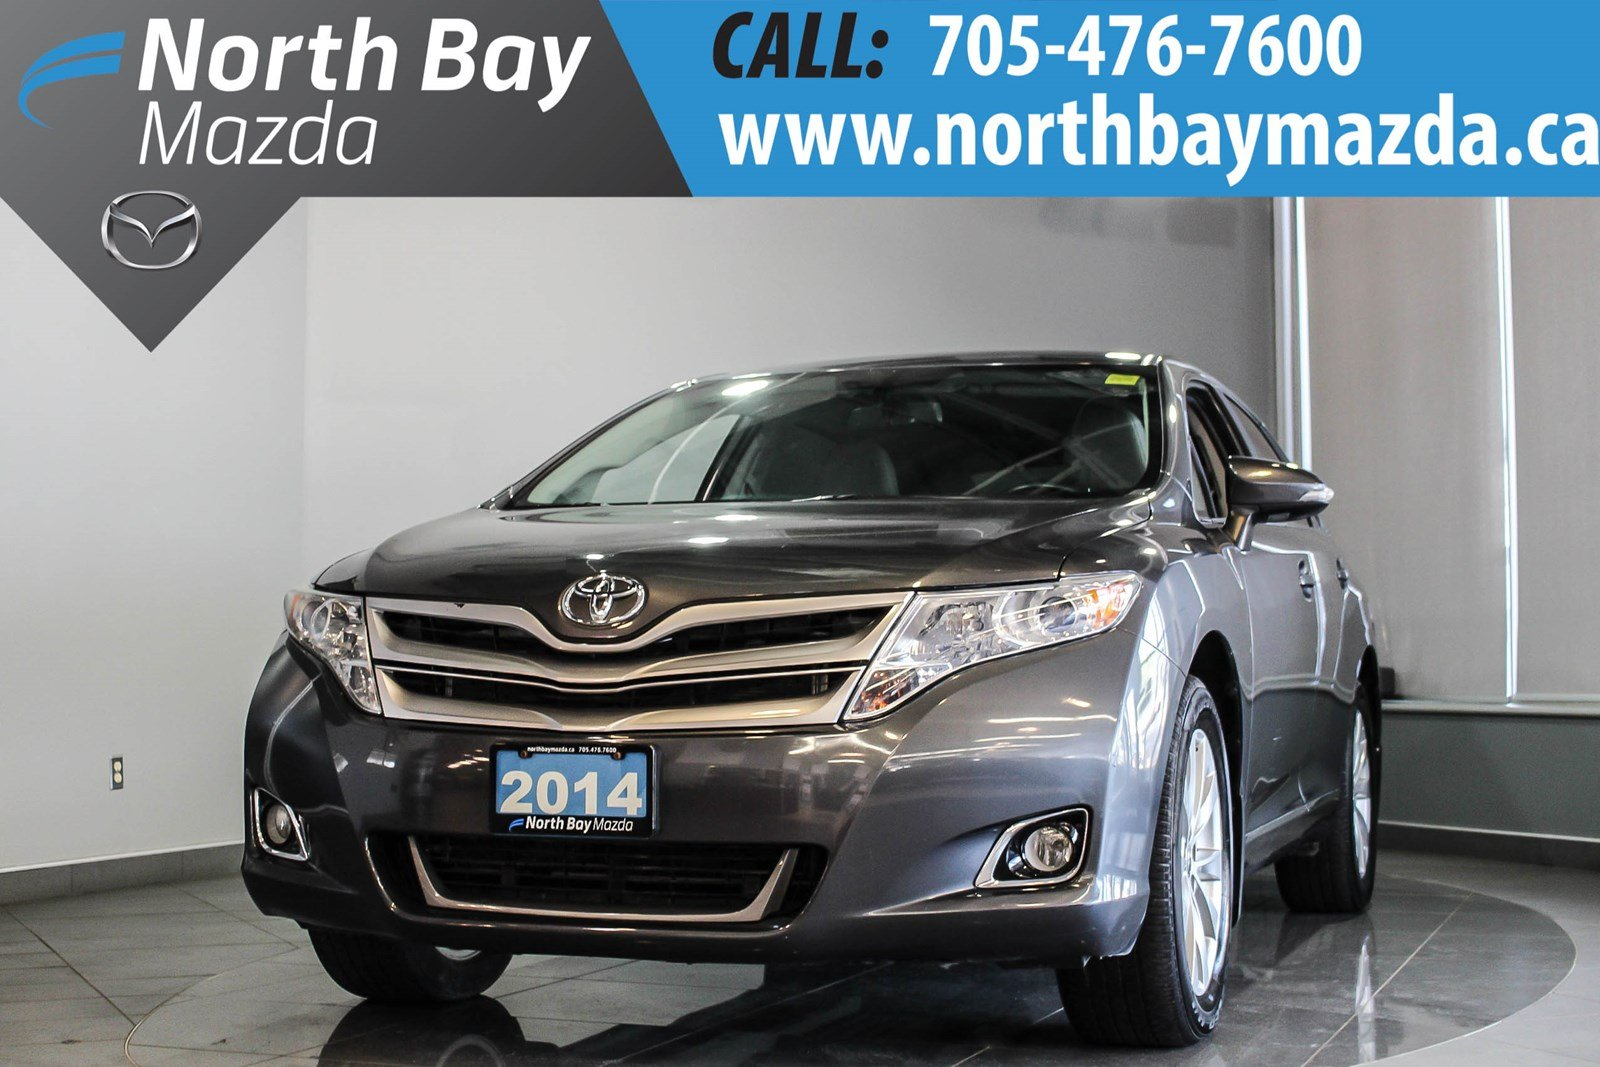 Pre-Owned 2014 Toyota Venza LE AWD 4Cyl with New Tires + Winter Tires and Free Storage!